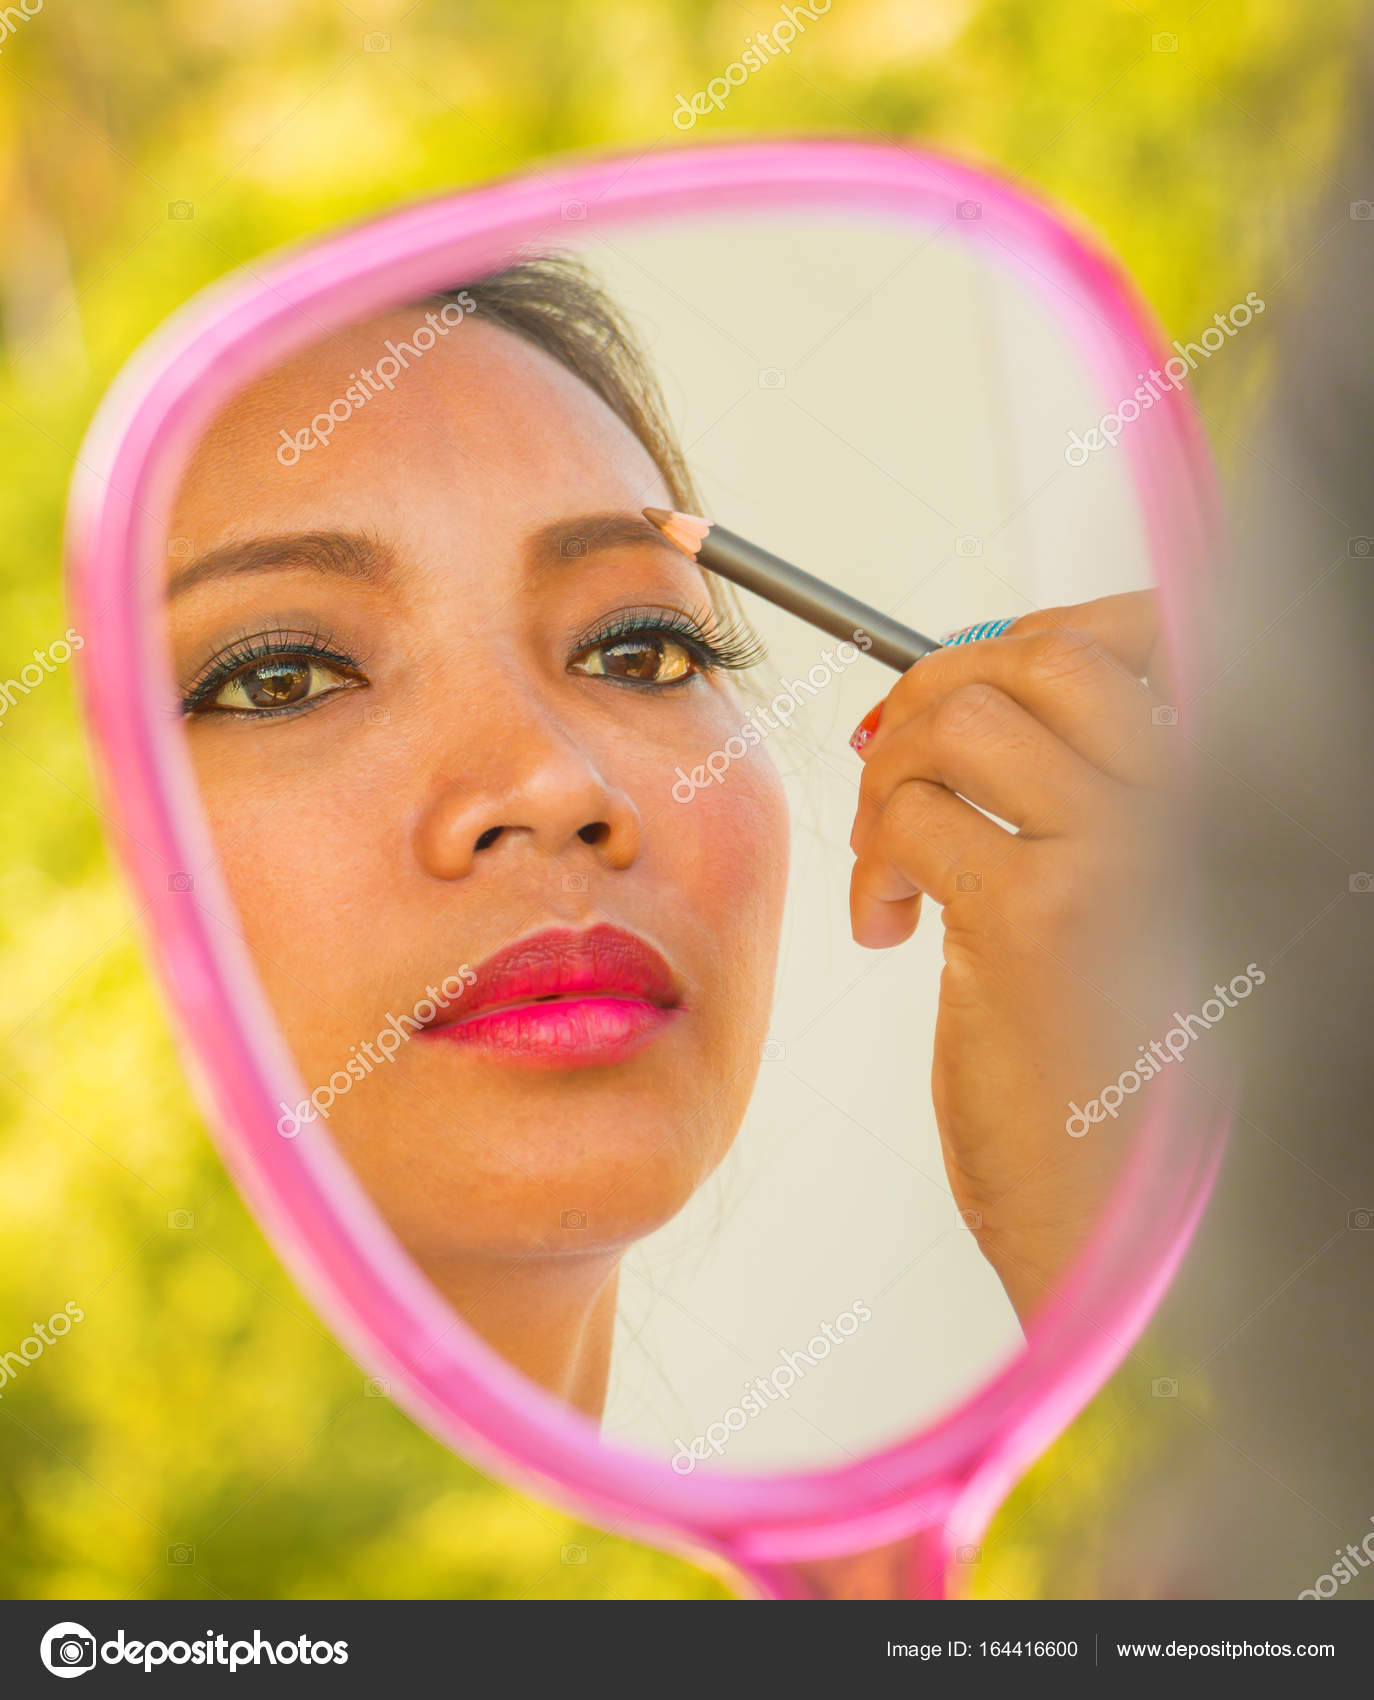 Applying Eyebrows Makeup In Mirror Shows Cosmetics Stock Photo